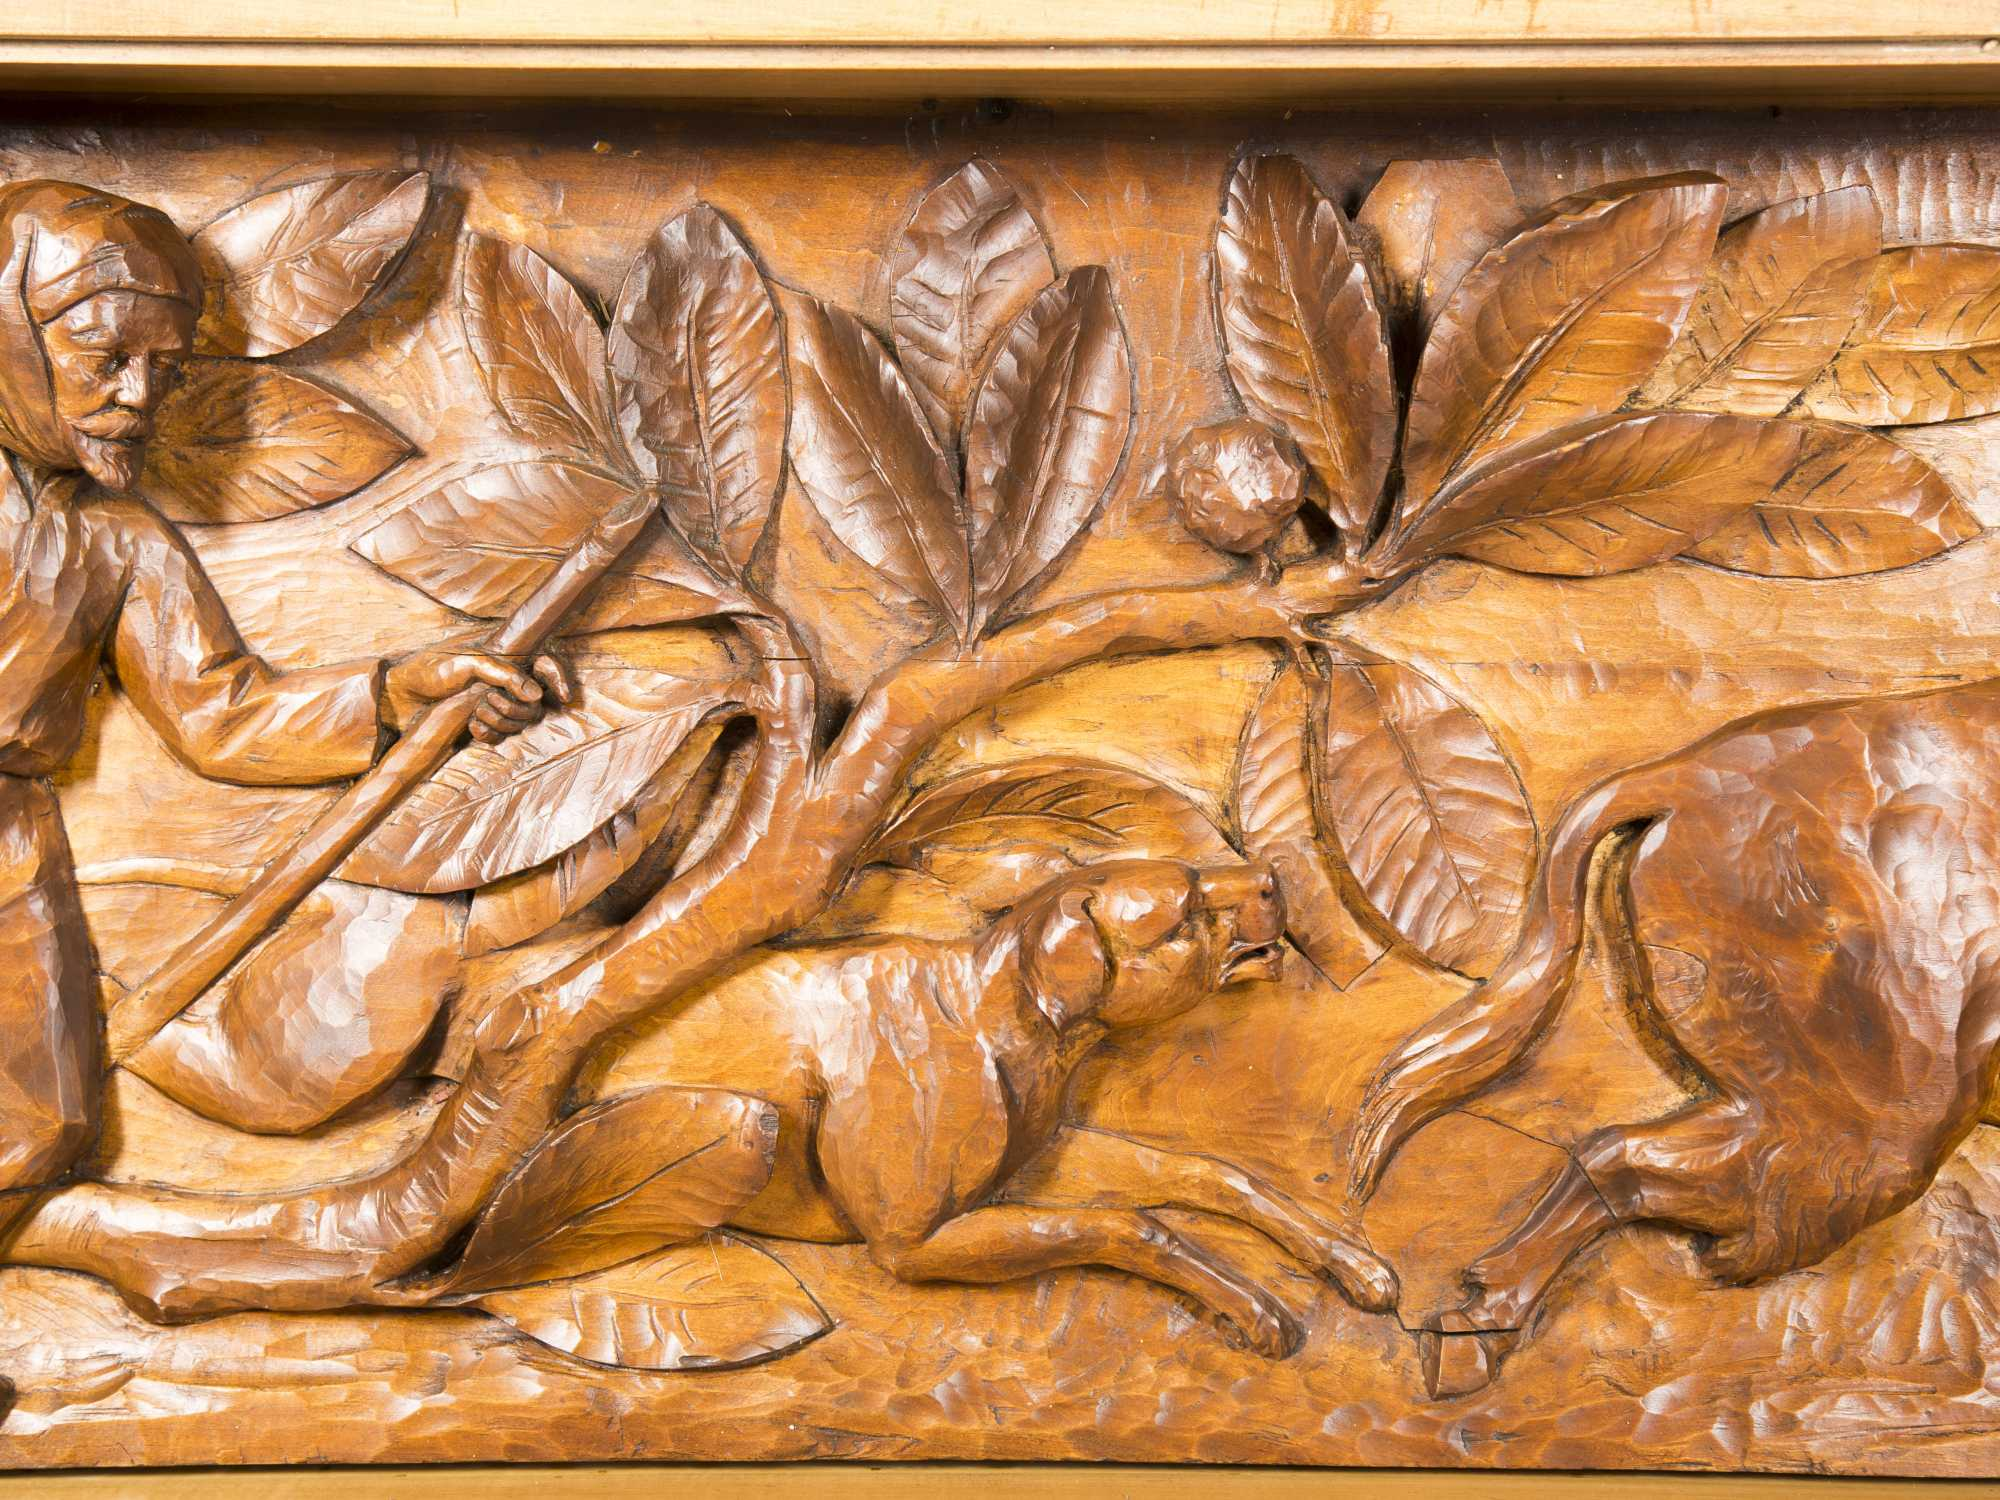 Unknown wood bas relief carving